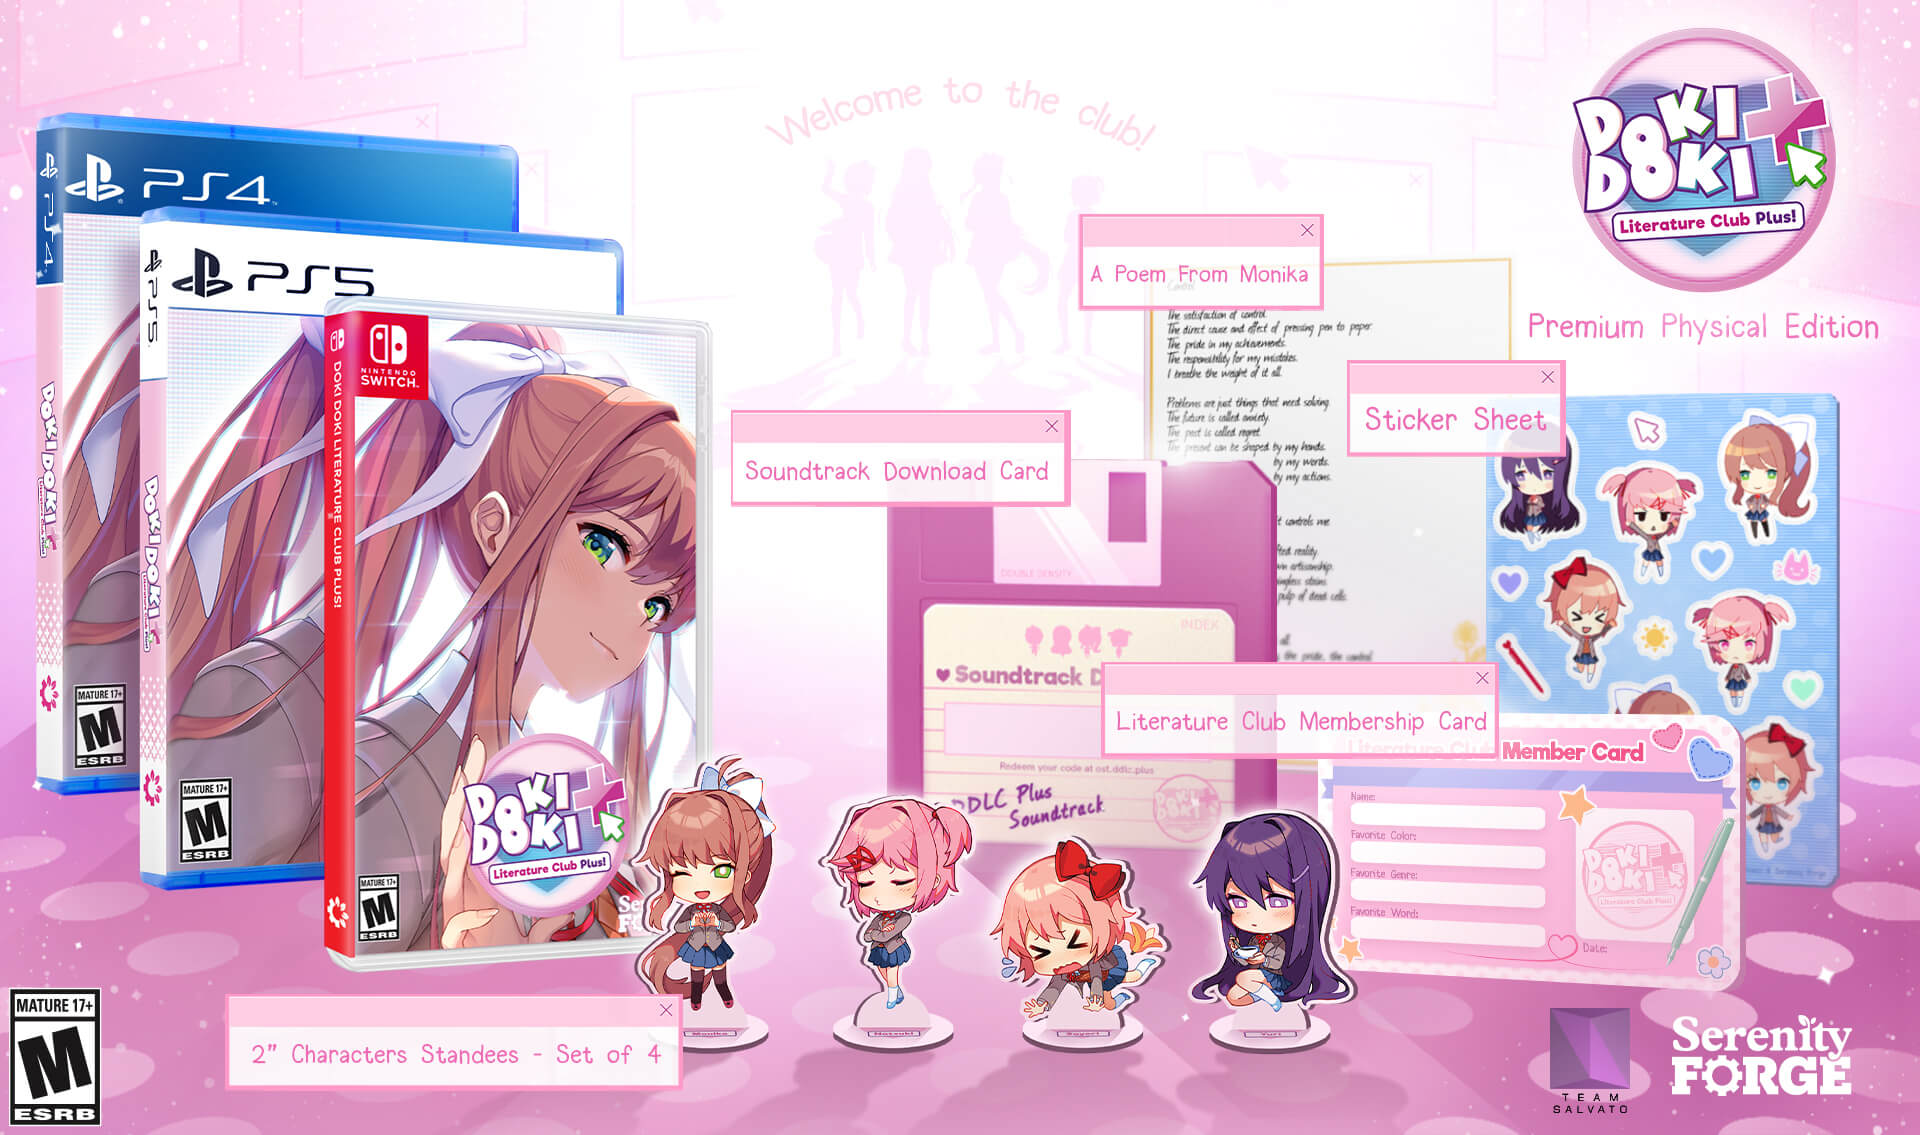 Product shot showing PS4, PS5, and Nintendo Switch game boxes for Doki Doki Literature Club Plus! with the other items you get in this special preorder